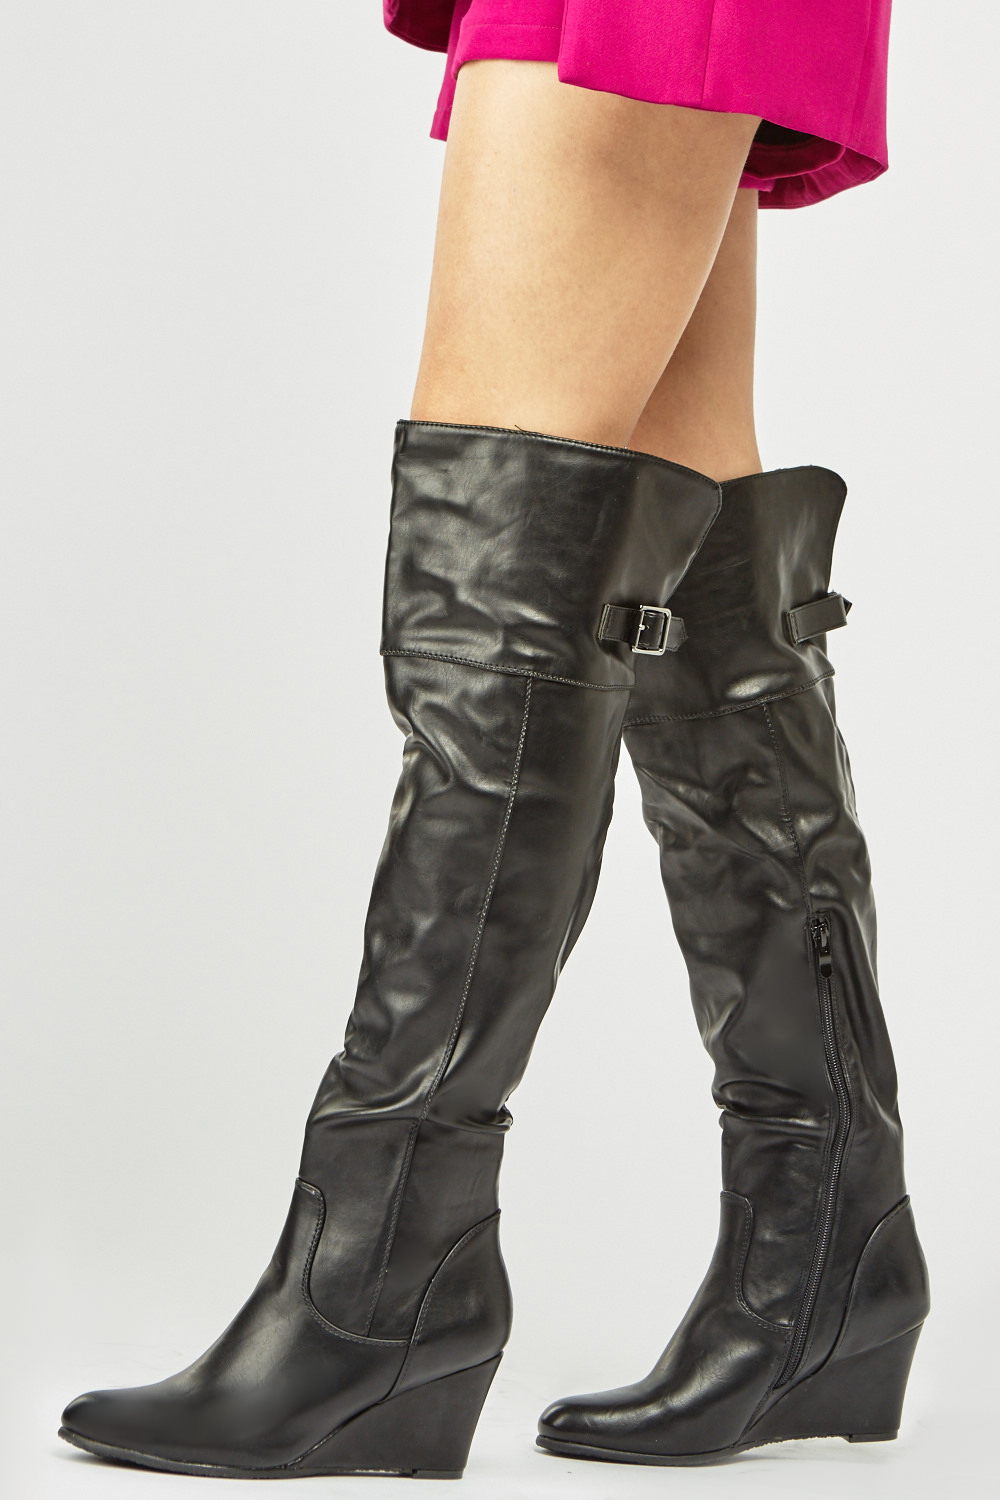 540fb4f6fe2 Faux Leather Wedge Boots - Black - Just £15